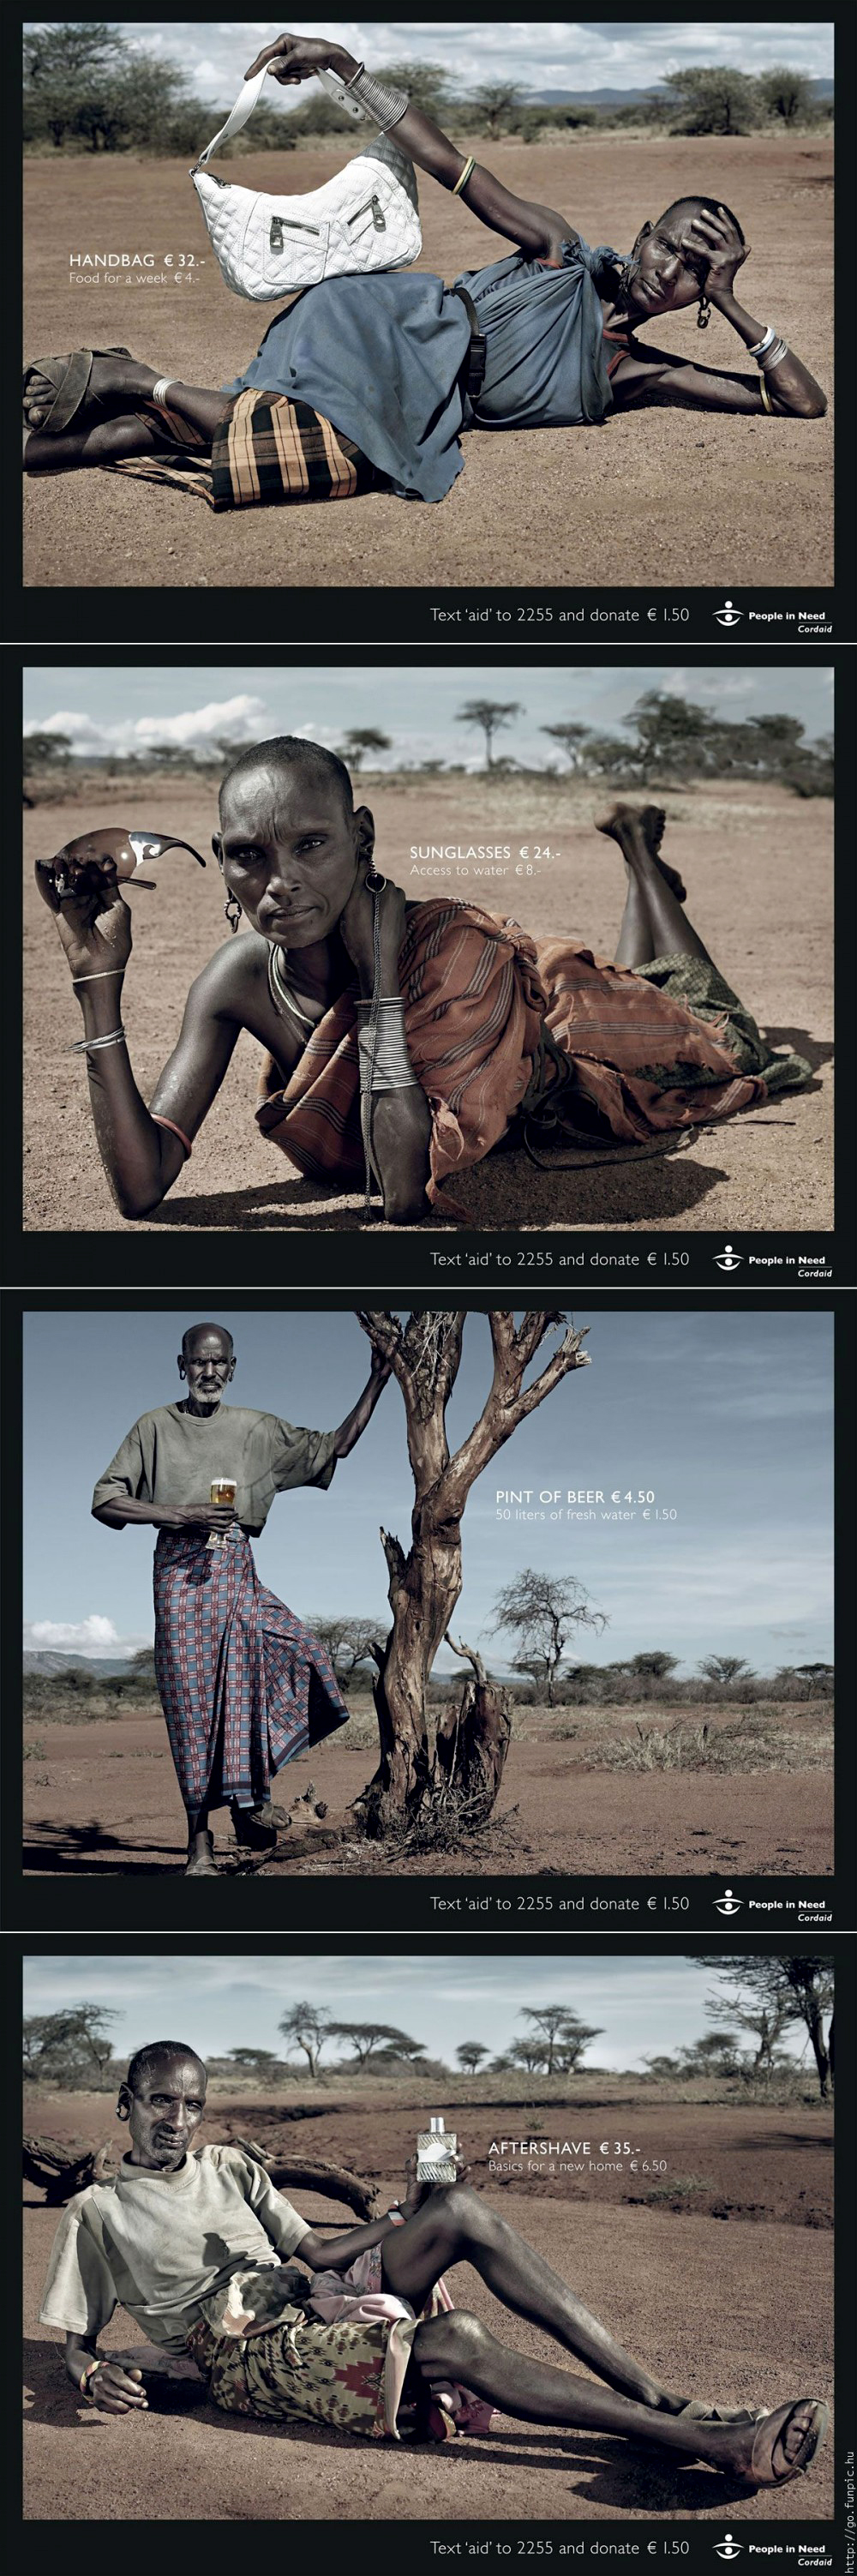 Series of ads for Cordaid by Saatchi